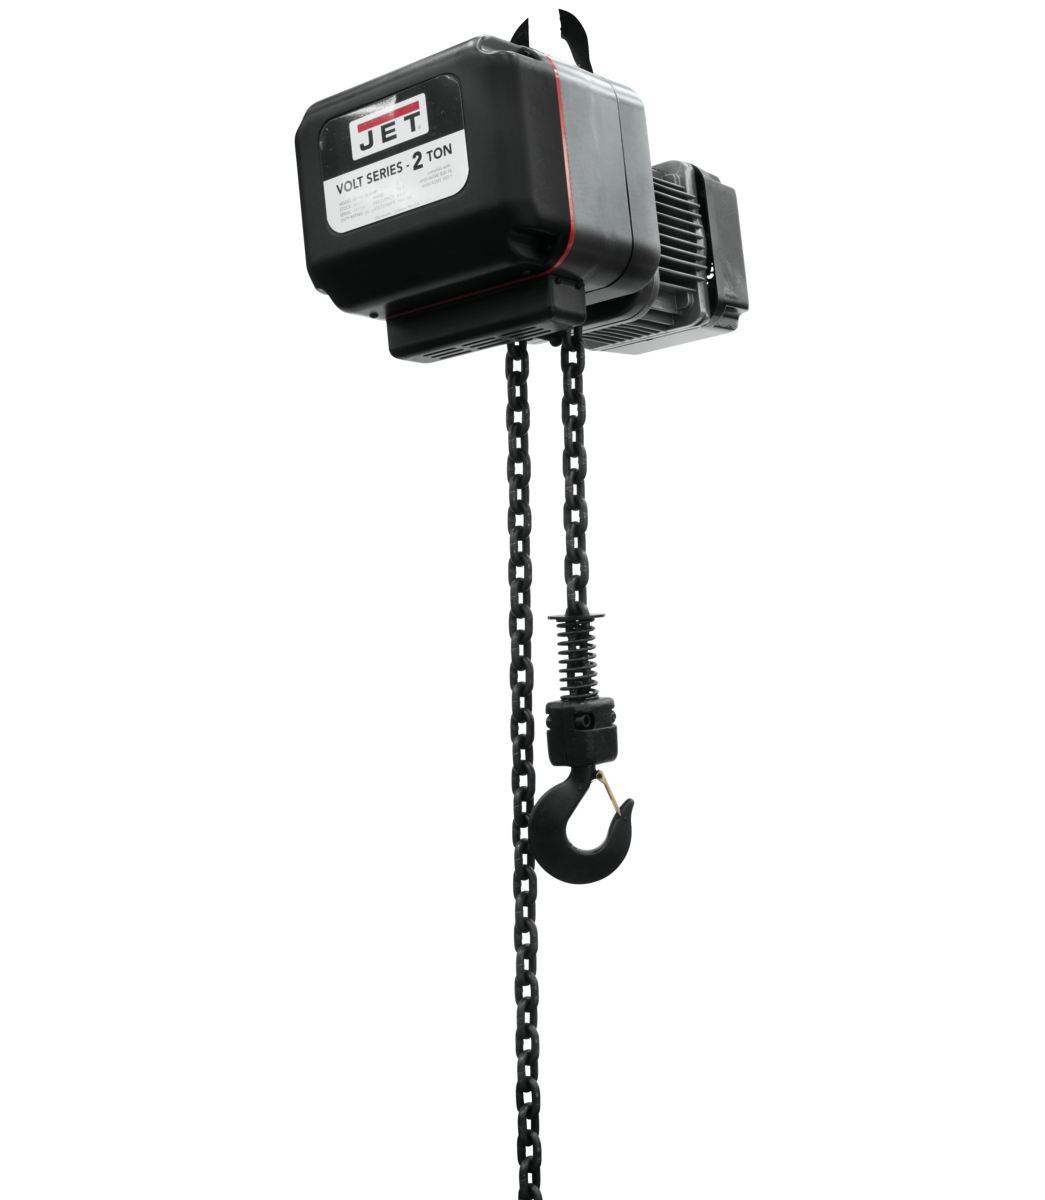 VOLT 2T VARIABLE-SPEED ELECTRIC HOIST 3PH 230V 10' LIFT